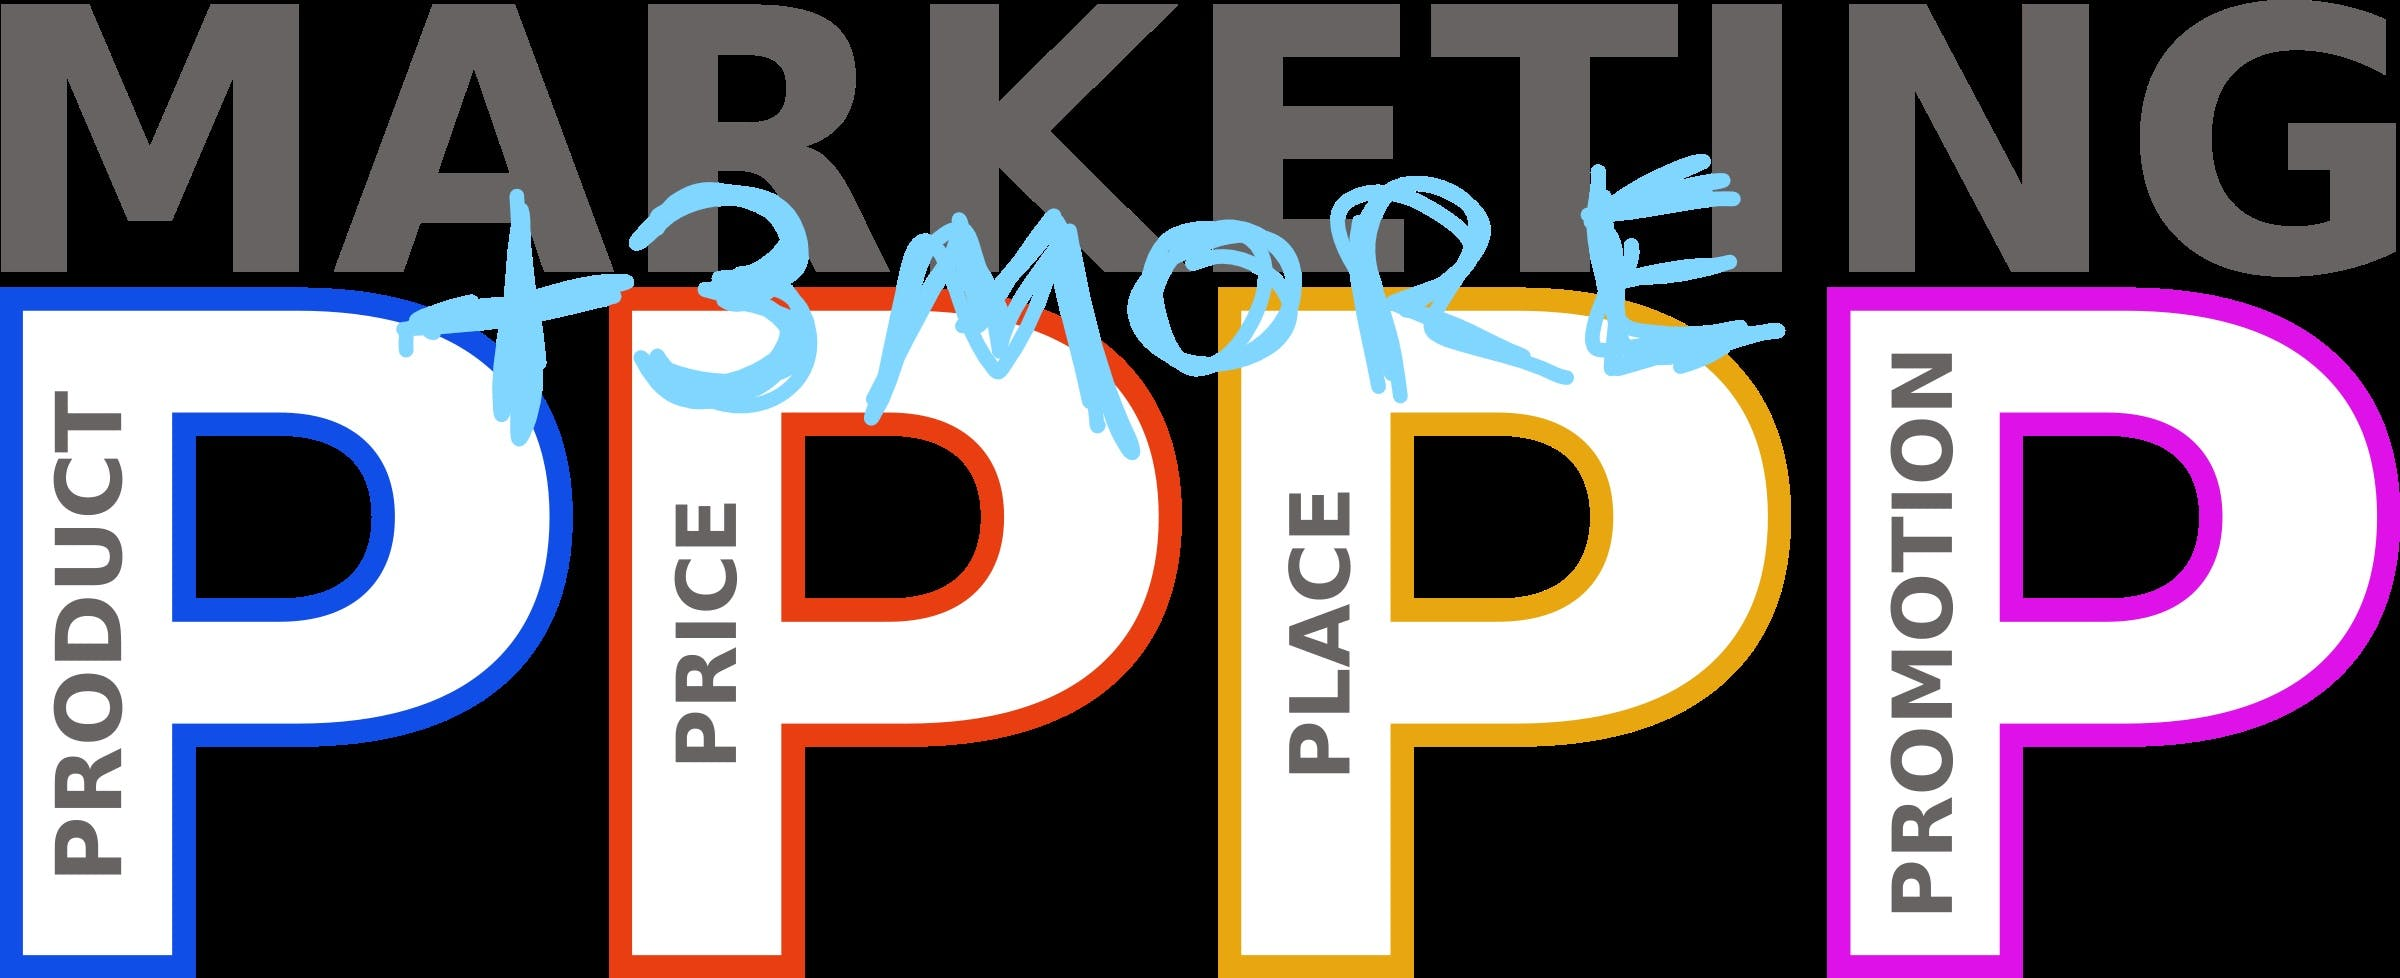 Business Studies: The 7 Ps of marketing